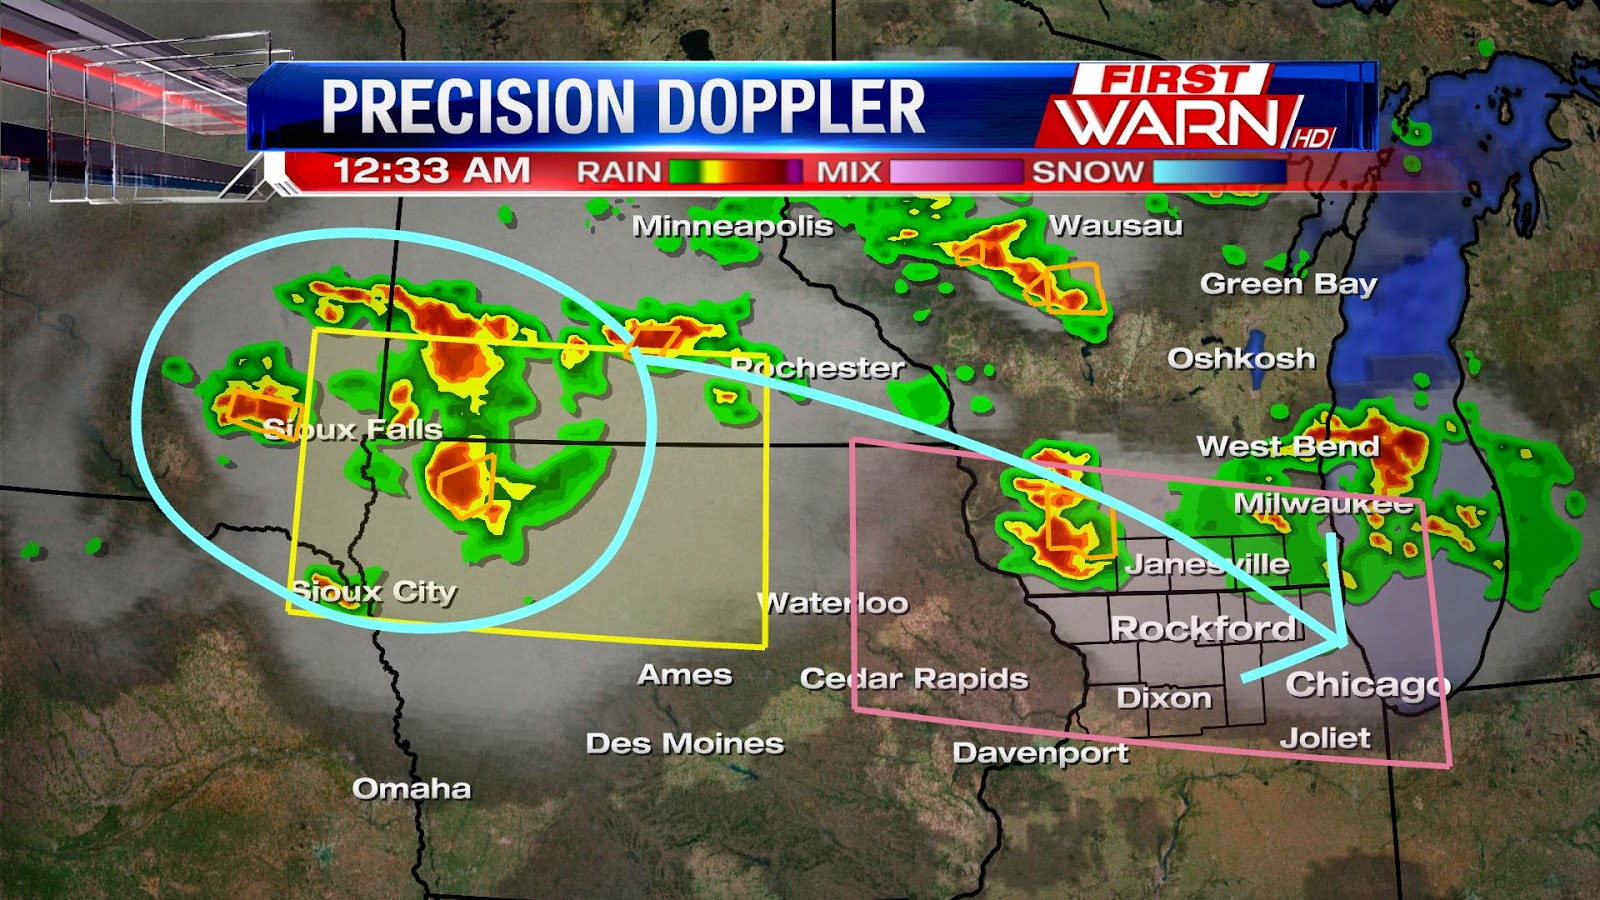 First Warn Weather Team: Tuesday Evening Severe Weather Update